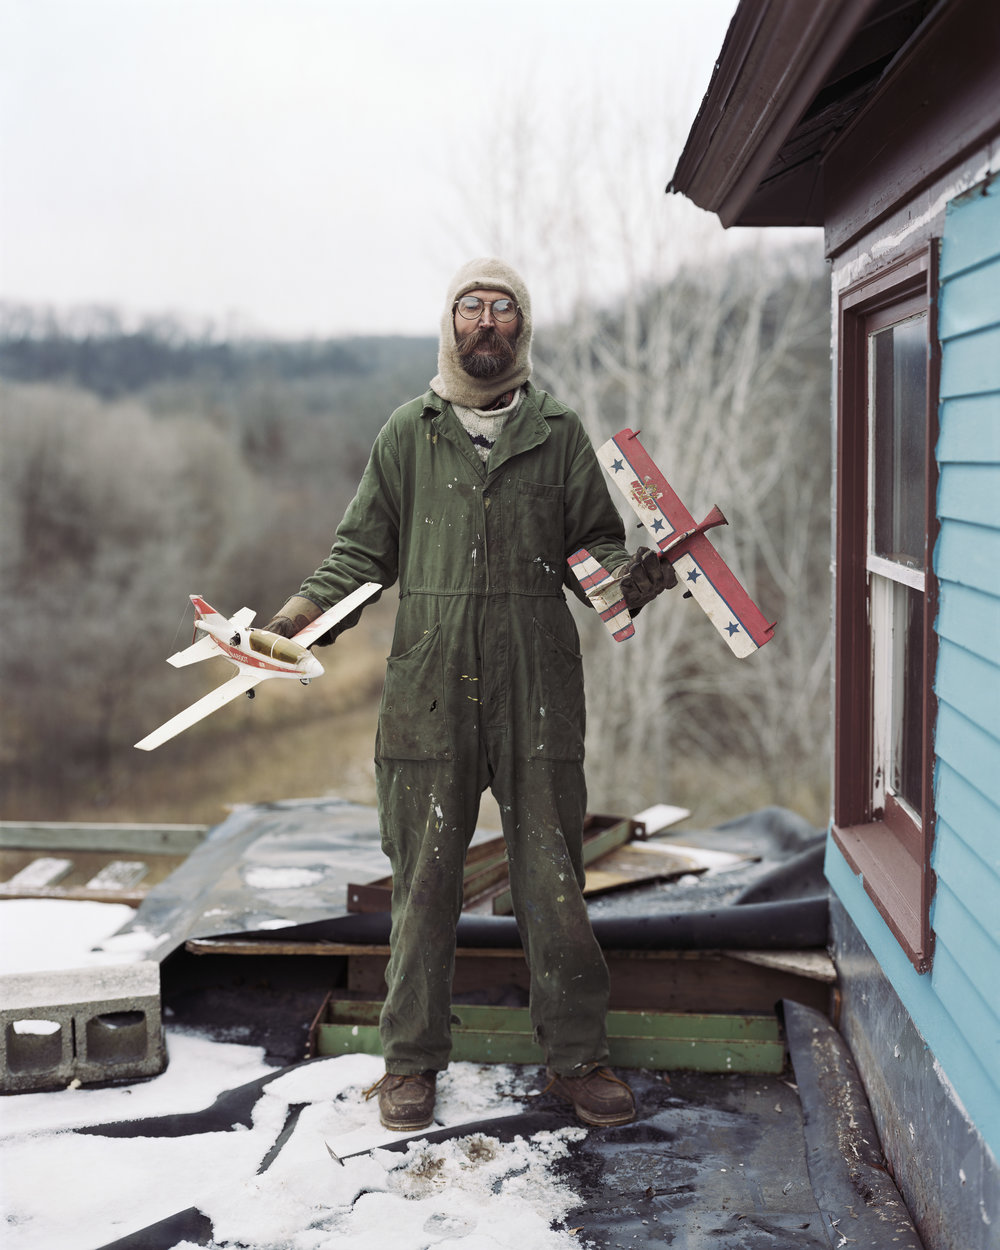 Alec Soth Charles, Vasa, Minnesota, 2002 Aus der Serie: Sleeping by the Mississippi  © Alec Soth / Magnum Photos / Agentur Focus